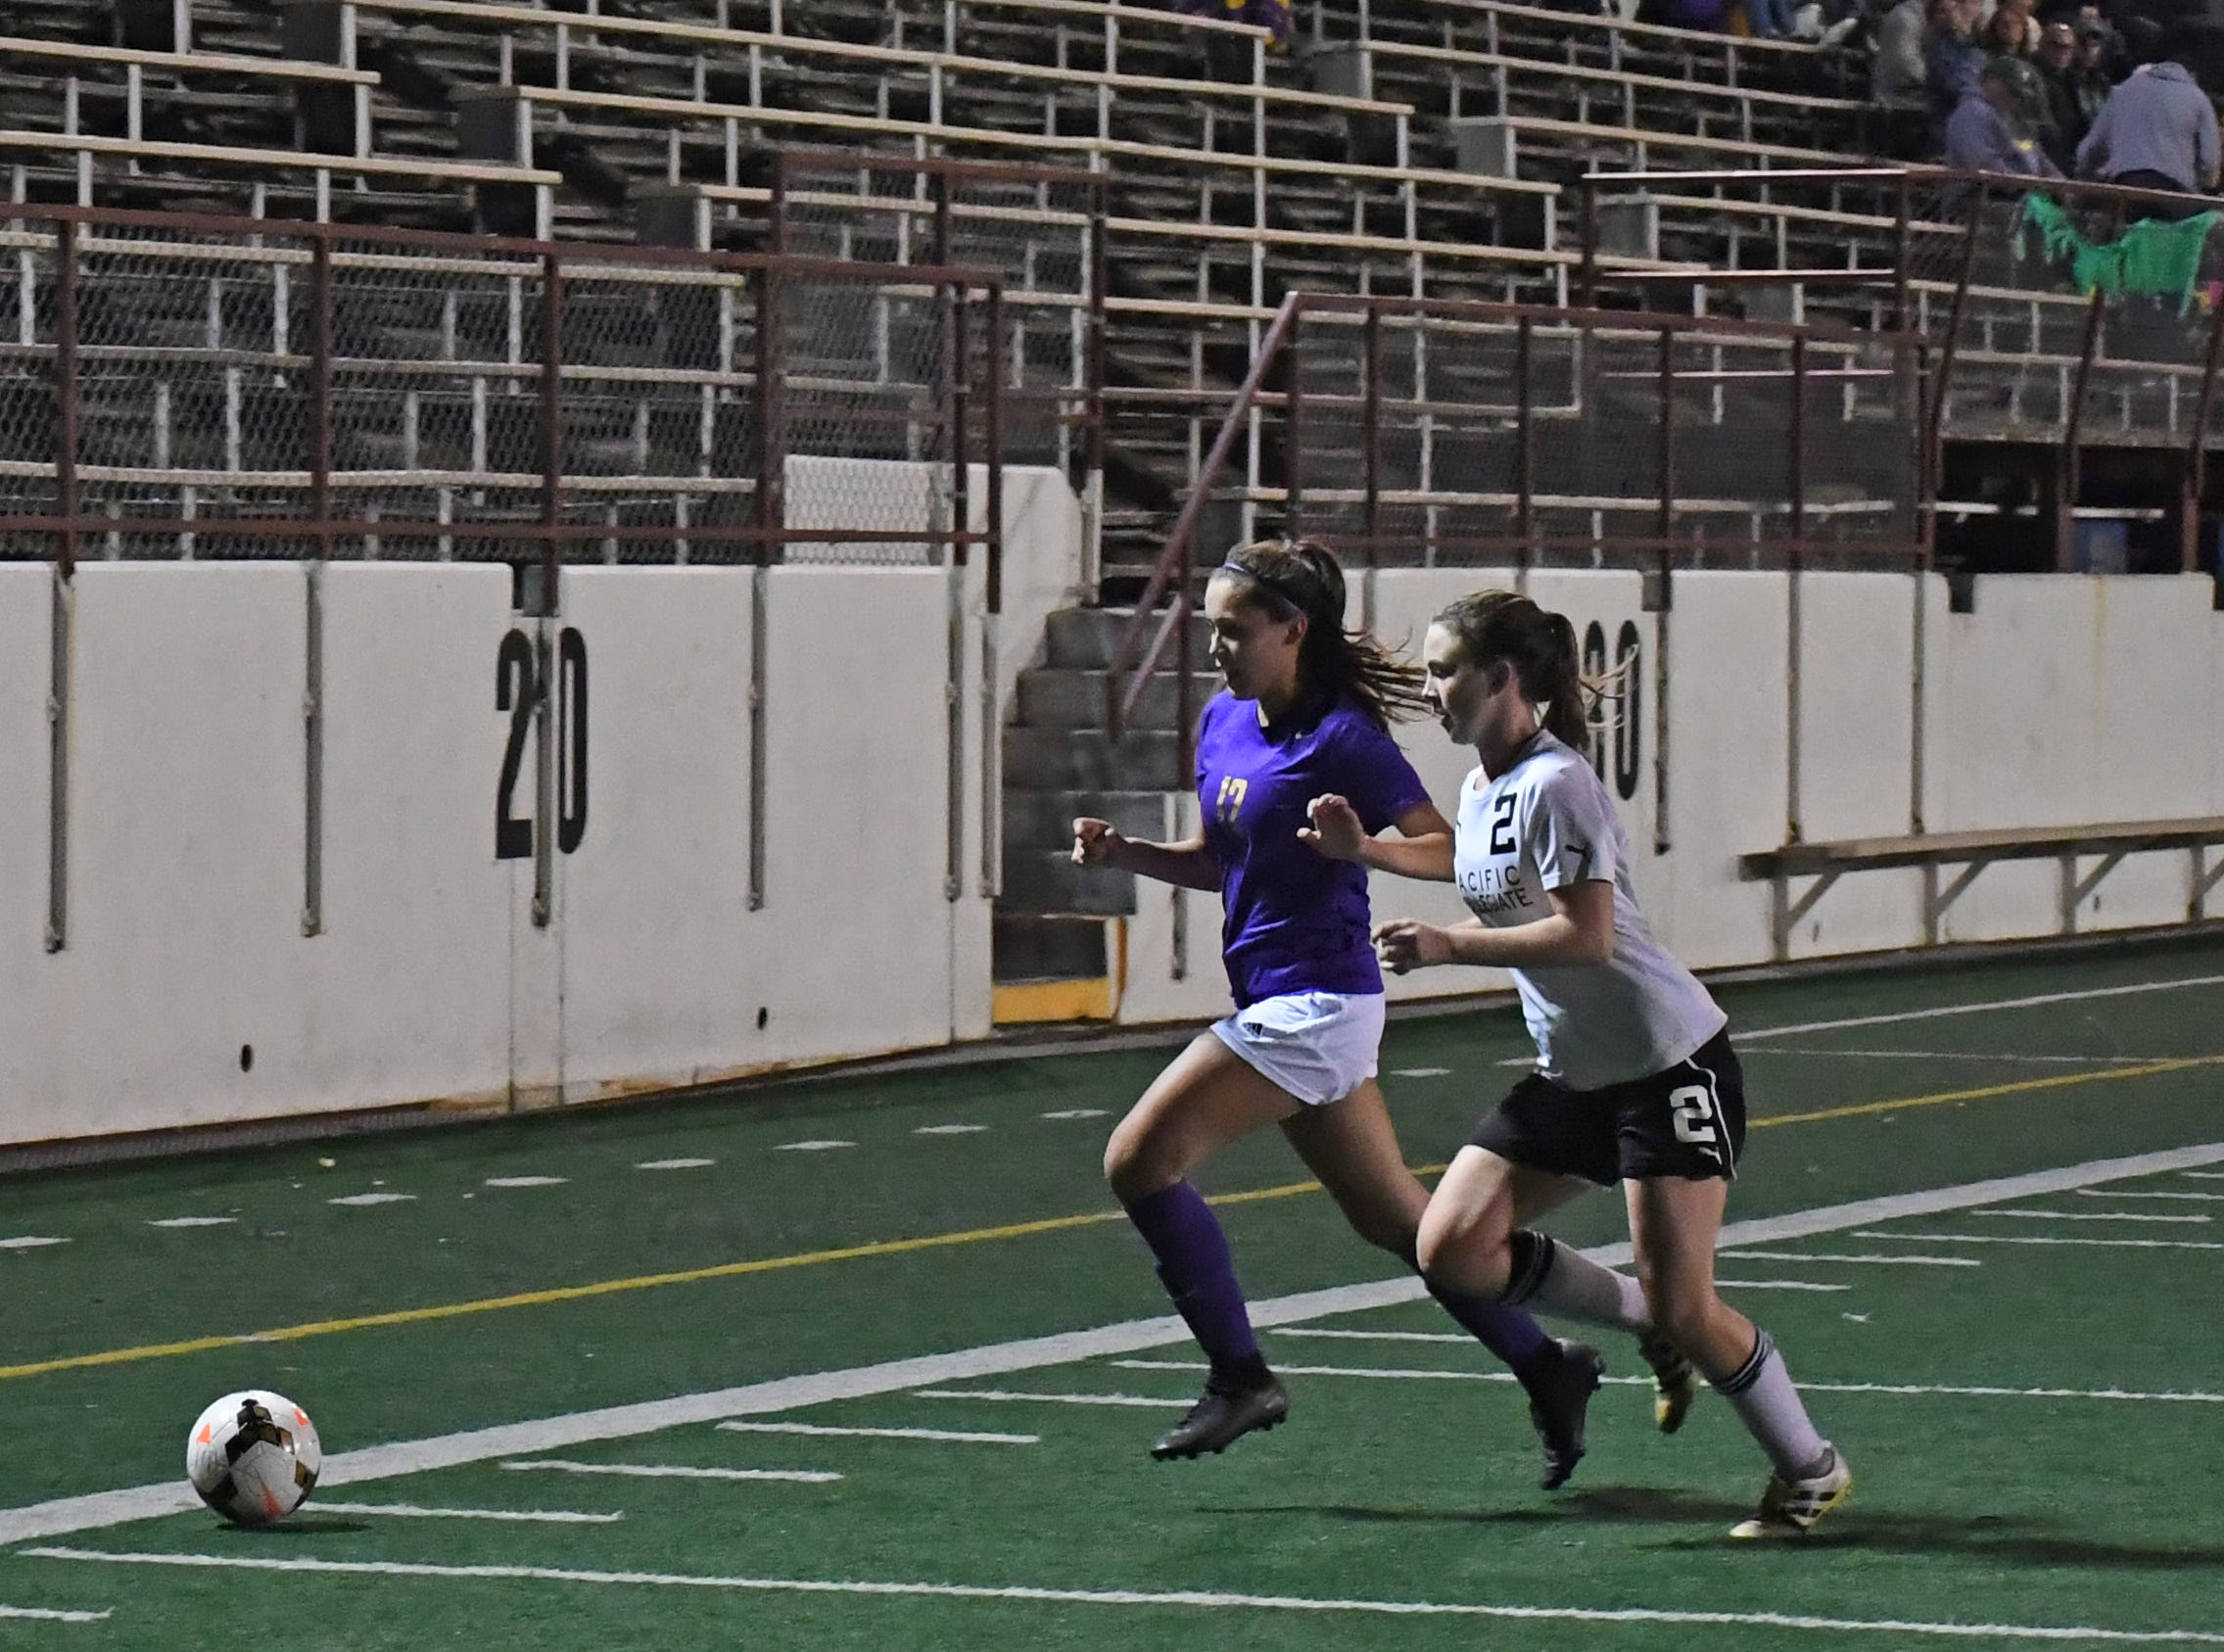 Junior Victoria Pelagio (12) fights for possession along the sideline.